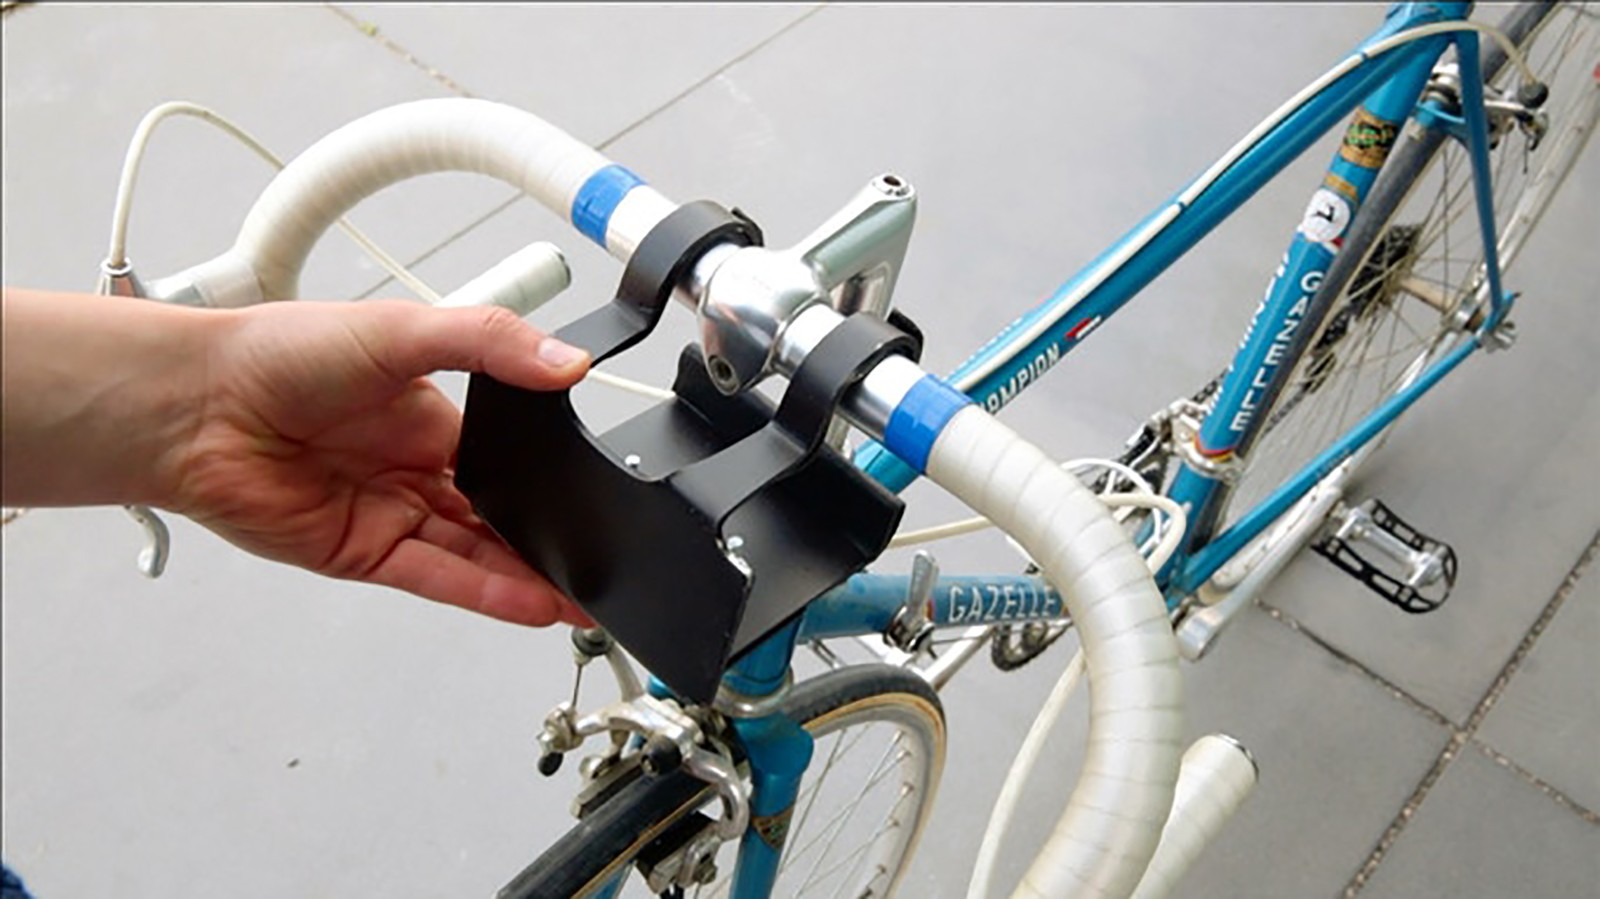 An easily removable mount is compatible with most bicycles